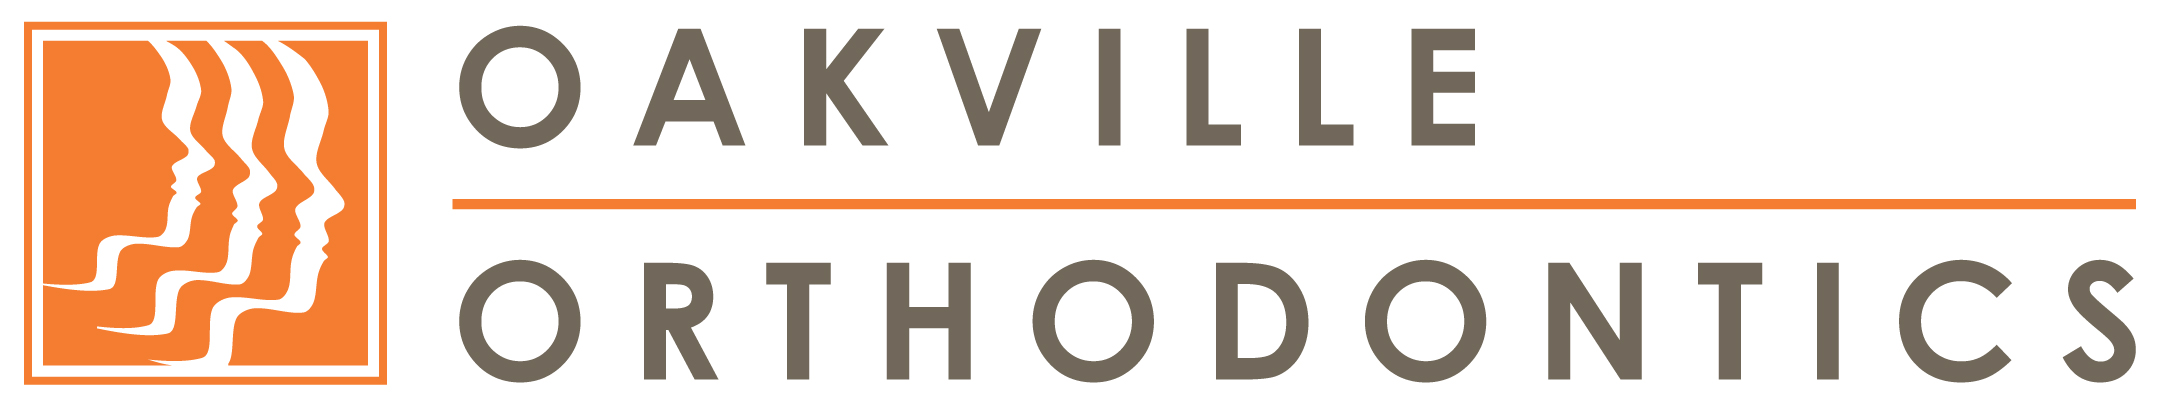 Oakville Orthodontics - Dentists - 9058458411